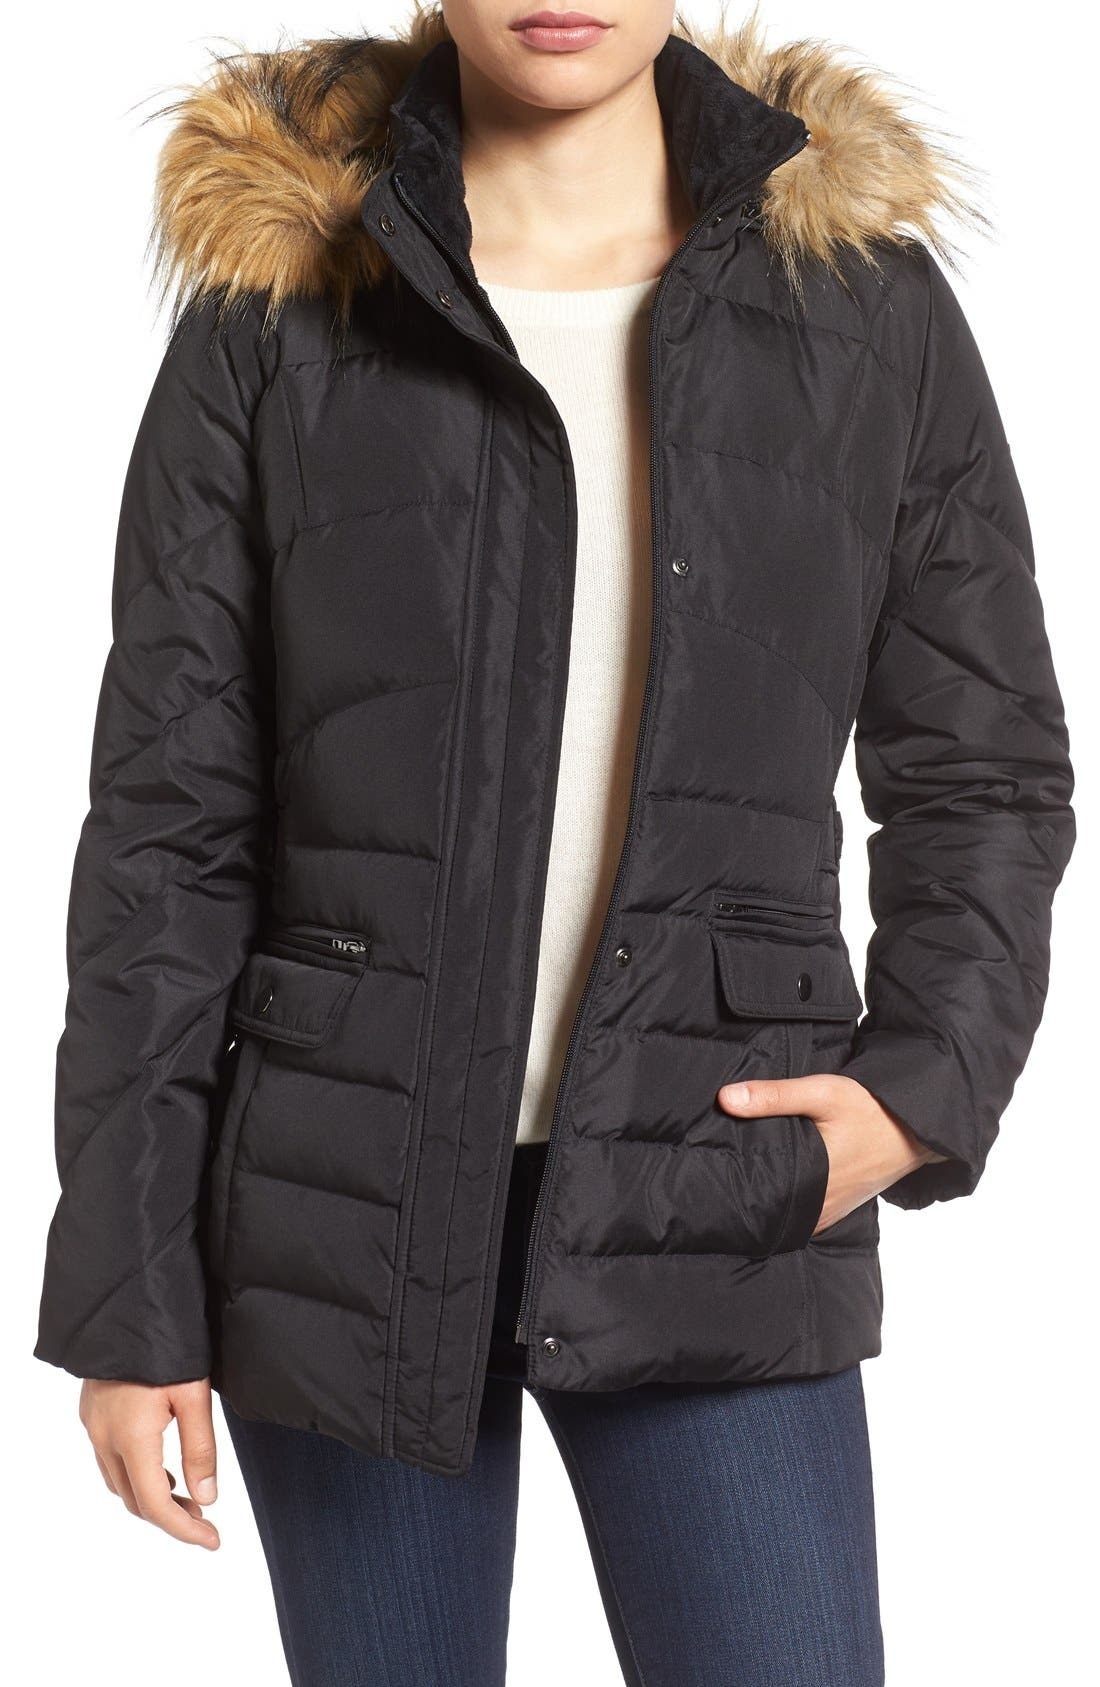 Main Image - Larry Levine Water Repellent Quilted Jacket with Faux Fur Trim